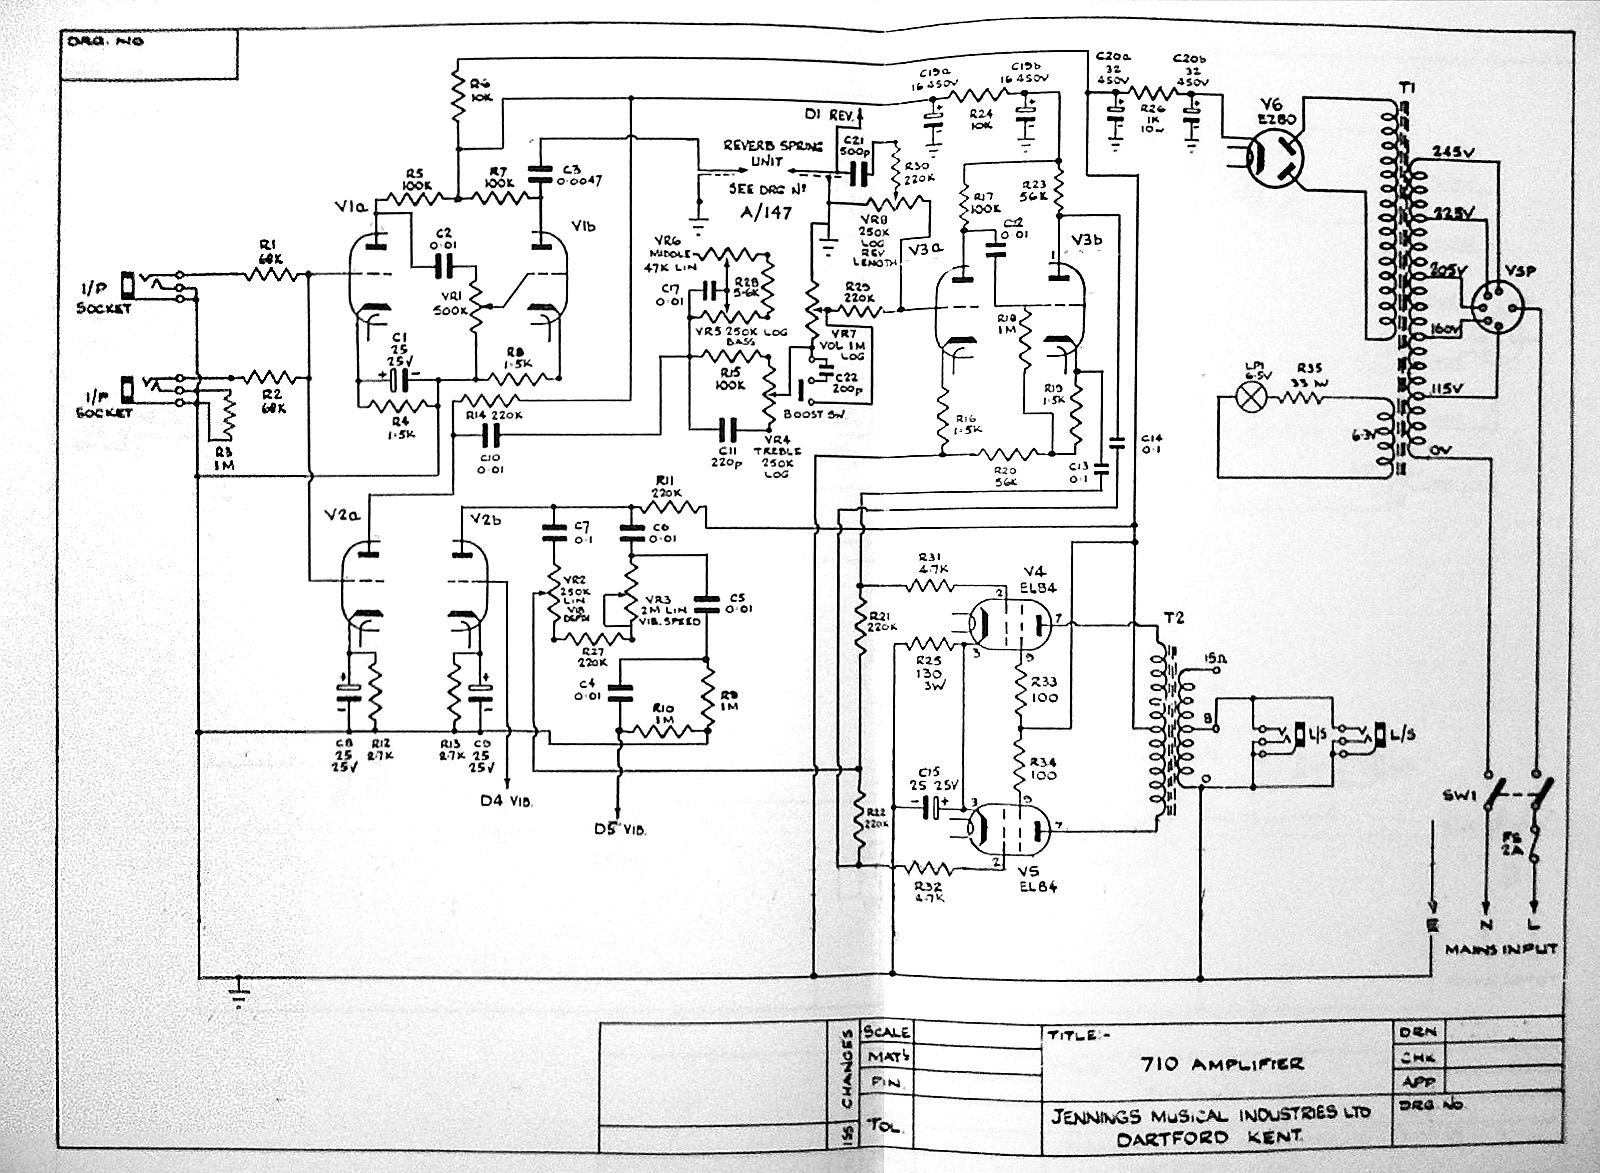 Wiring Diagram Ul - Search Wiring Diagram on ultima clutch diagram, dyna s ignition diagram, harley wiring harness diagram, evo sportster ignition diagram, ultima single fire coil wiring, ultima ignition system, shovelhead oil line routing diagram, 110cc mini chopper wiring diagram, evo cam cover diagram, simple harley wiring diagram, ultima motor diagram, ultima ignition harley, ultima ignition switch, typical ignition system diagram, coil wiring diagram, ignition coil diagram, shovelhead chopper wiring diagram, ultima ignition installation, ultima wiring diagram complete, ultima programmable ignition,